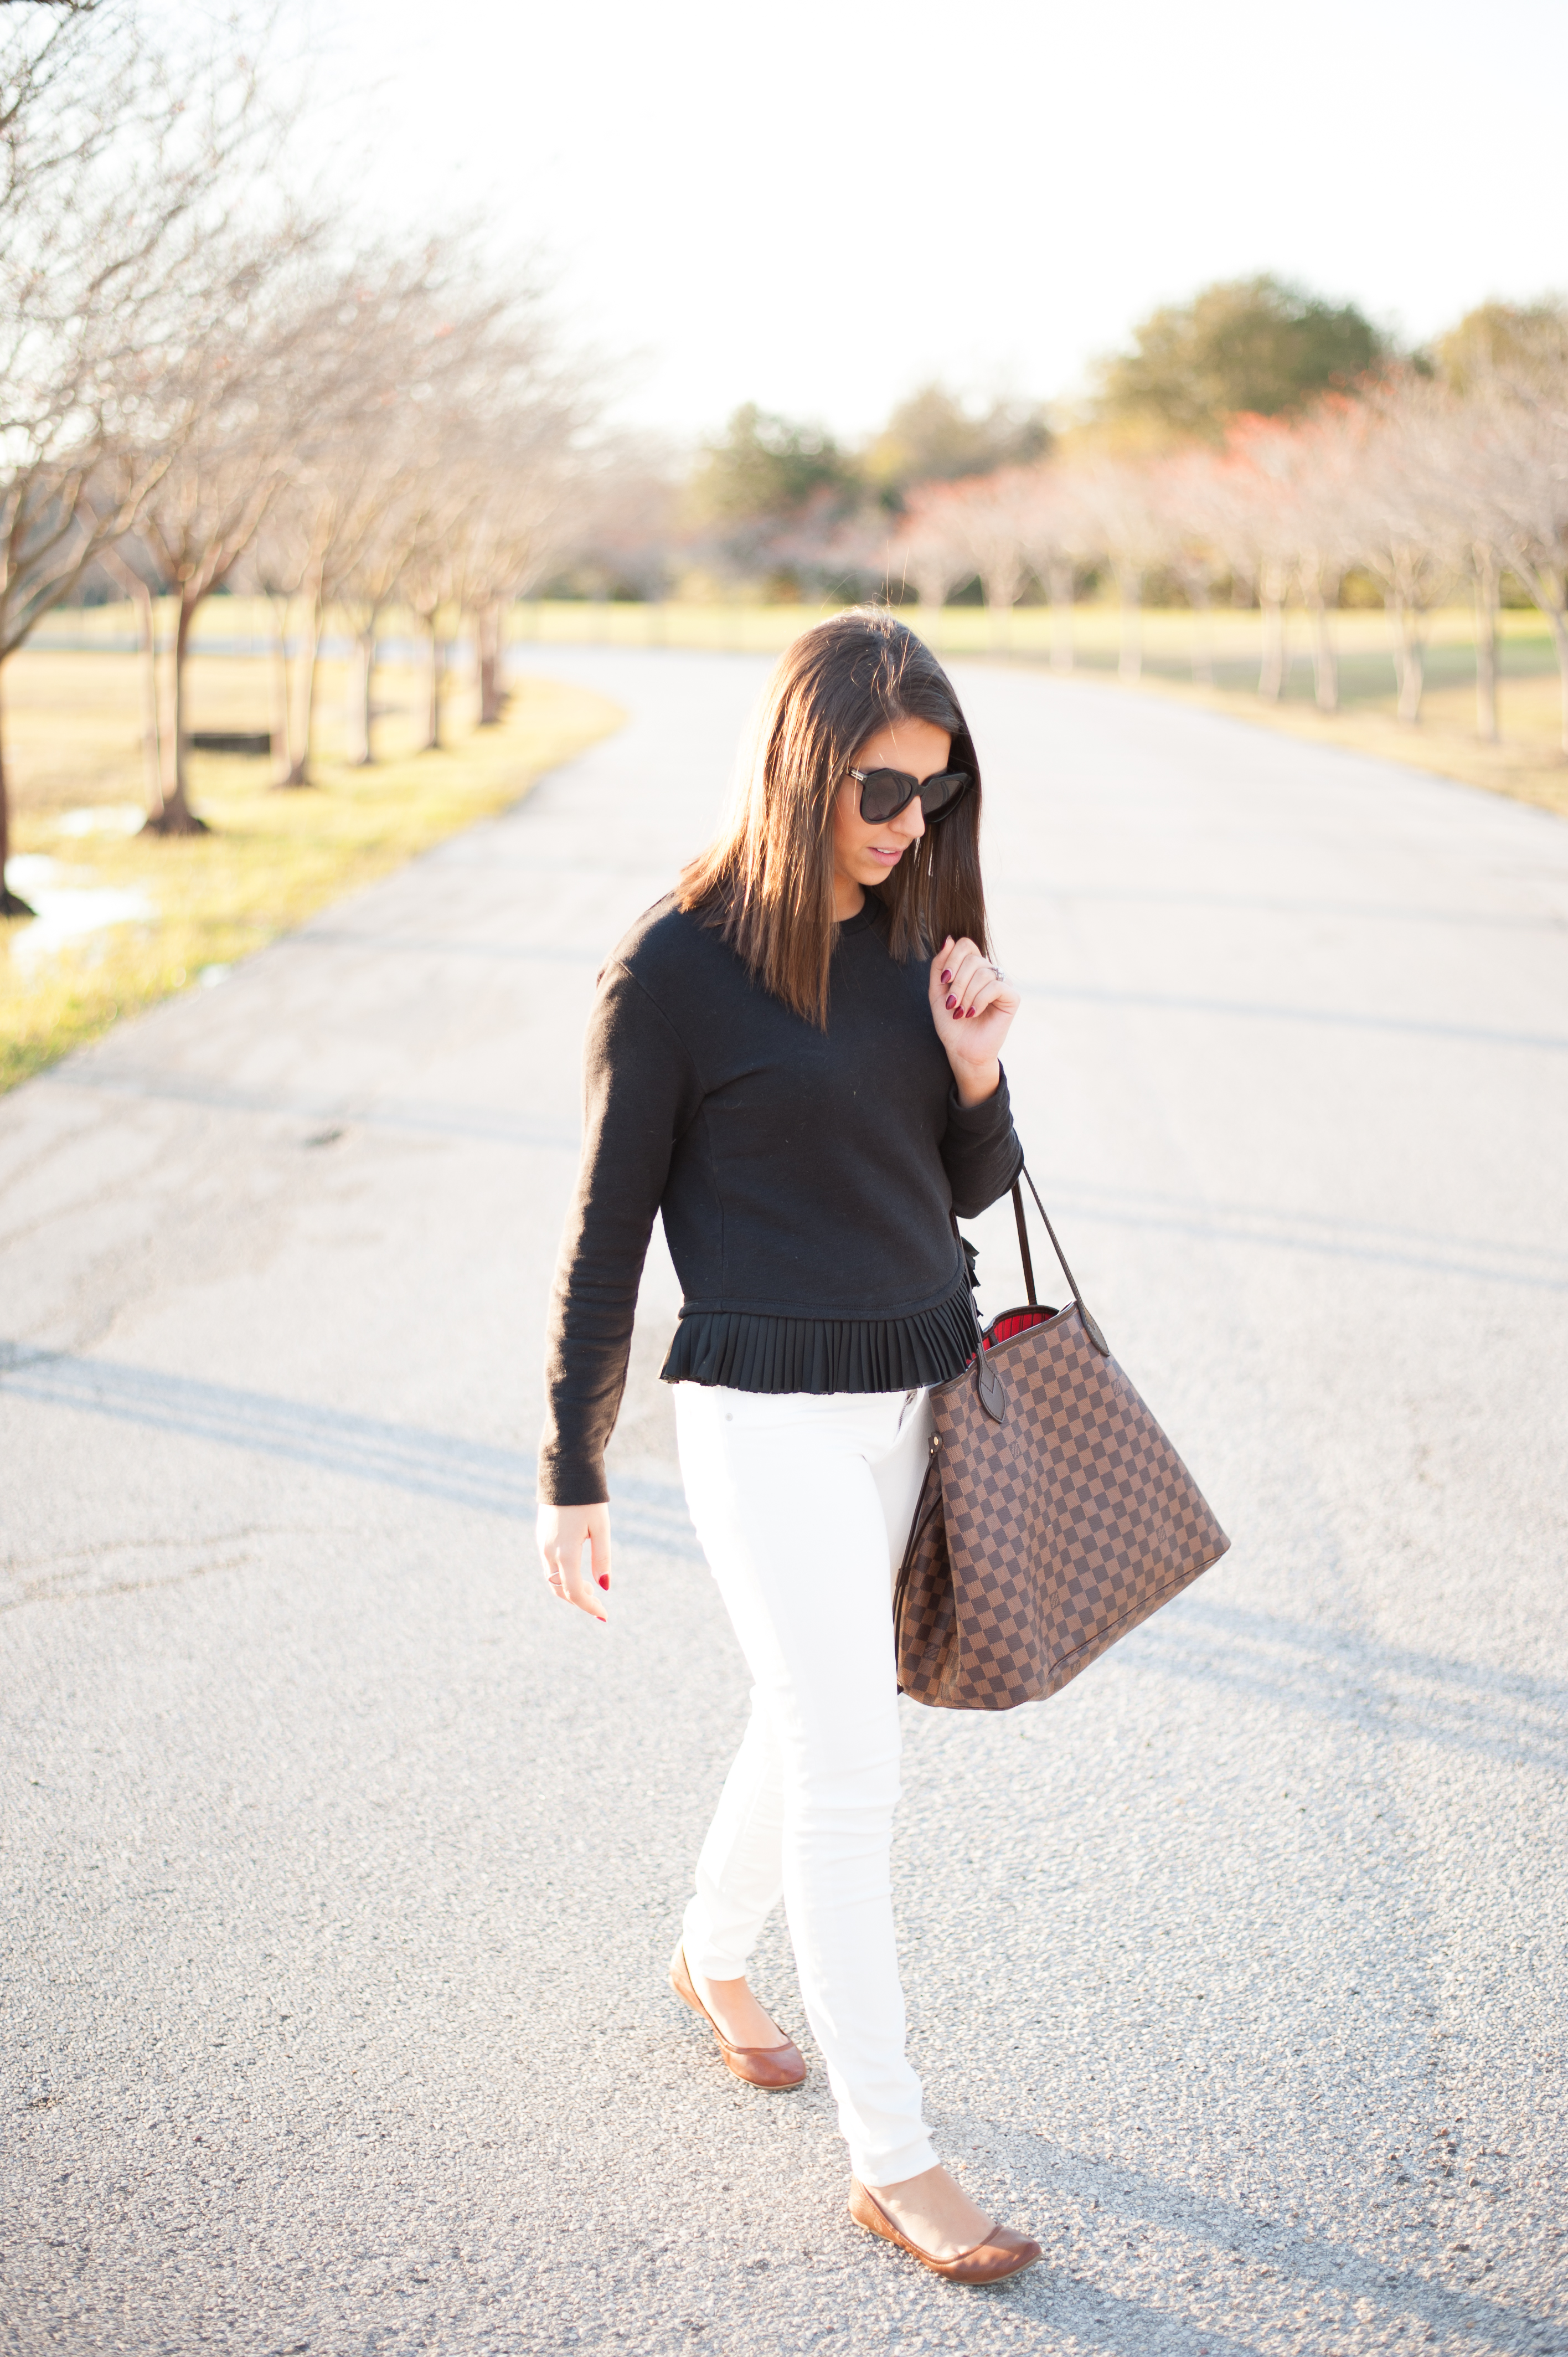 dress_up_buttercup_dede_raad_fashion_blogger_houston (6 of 8)